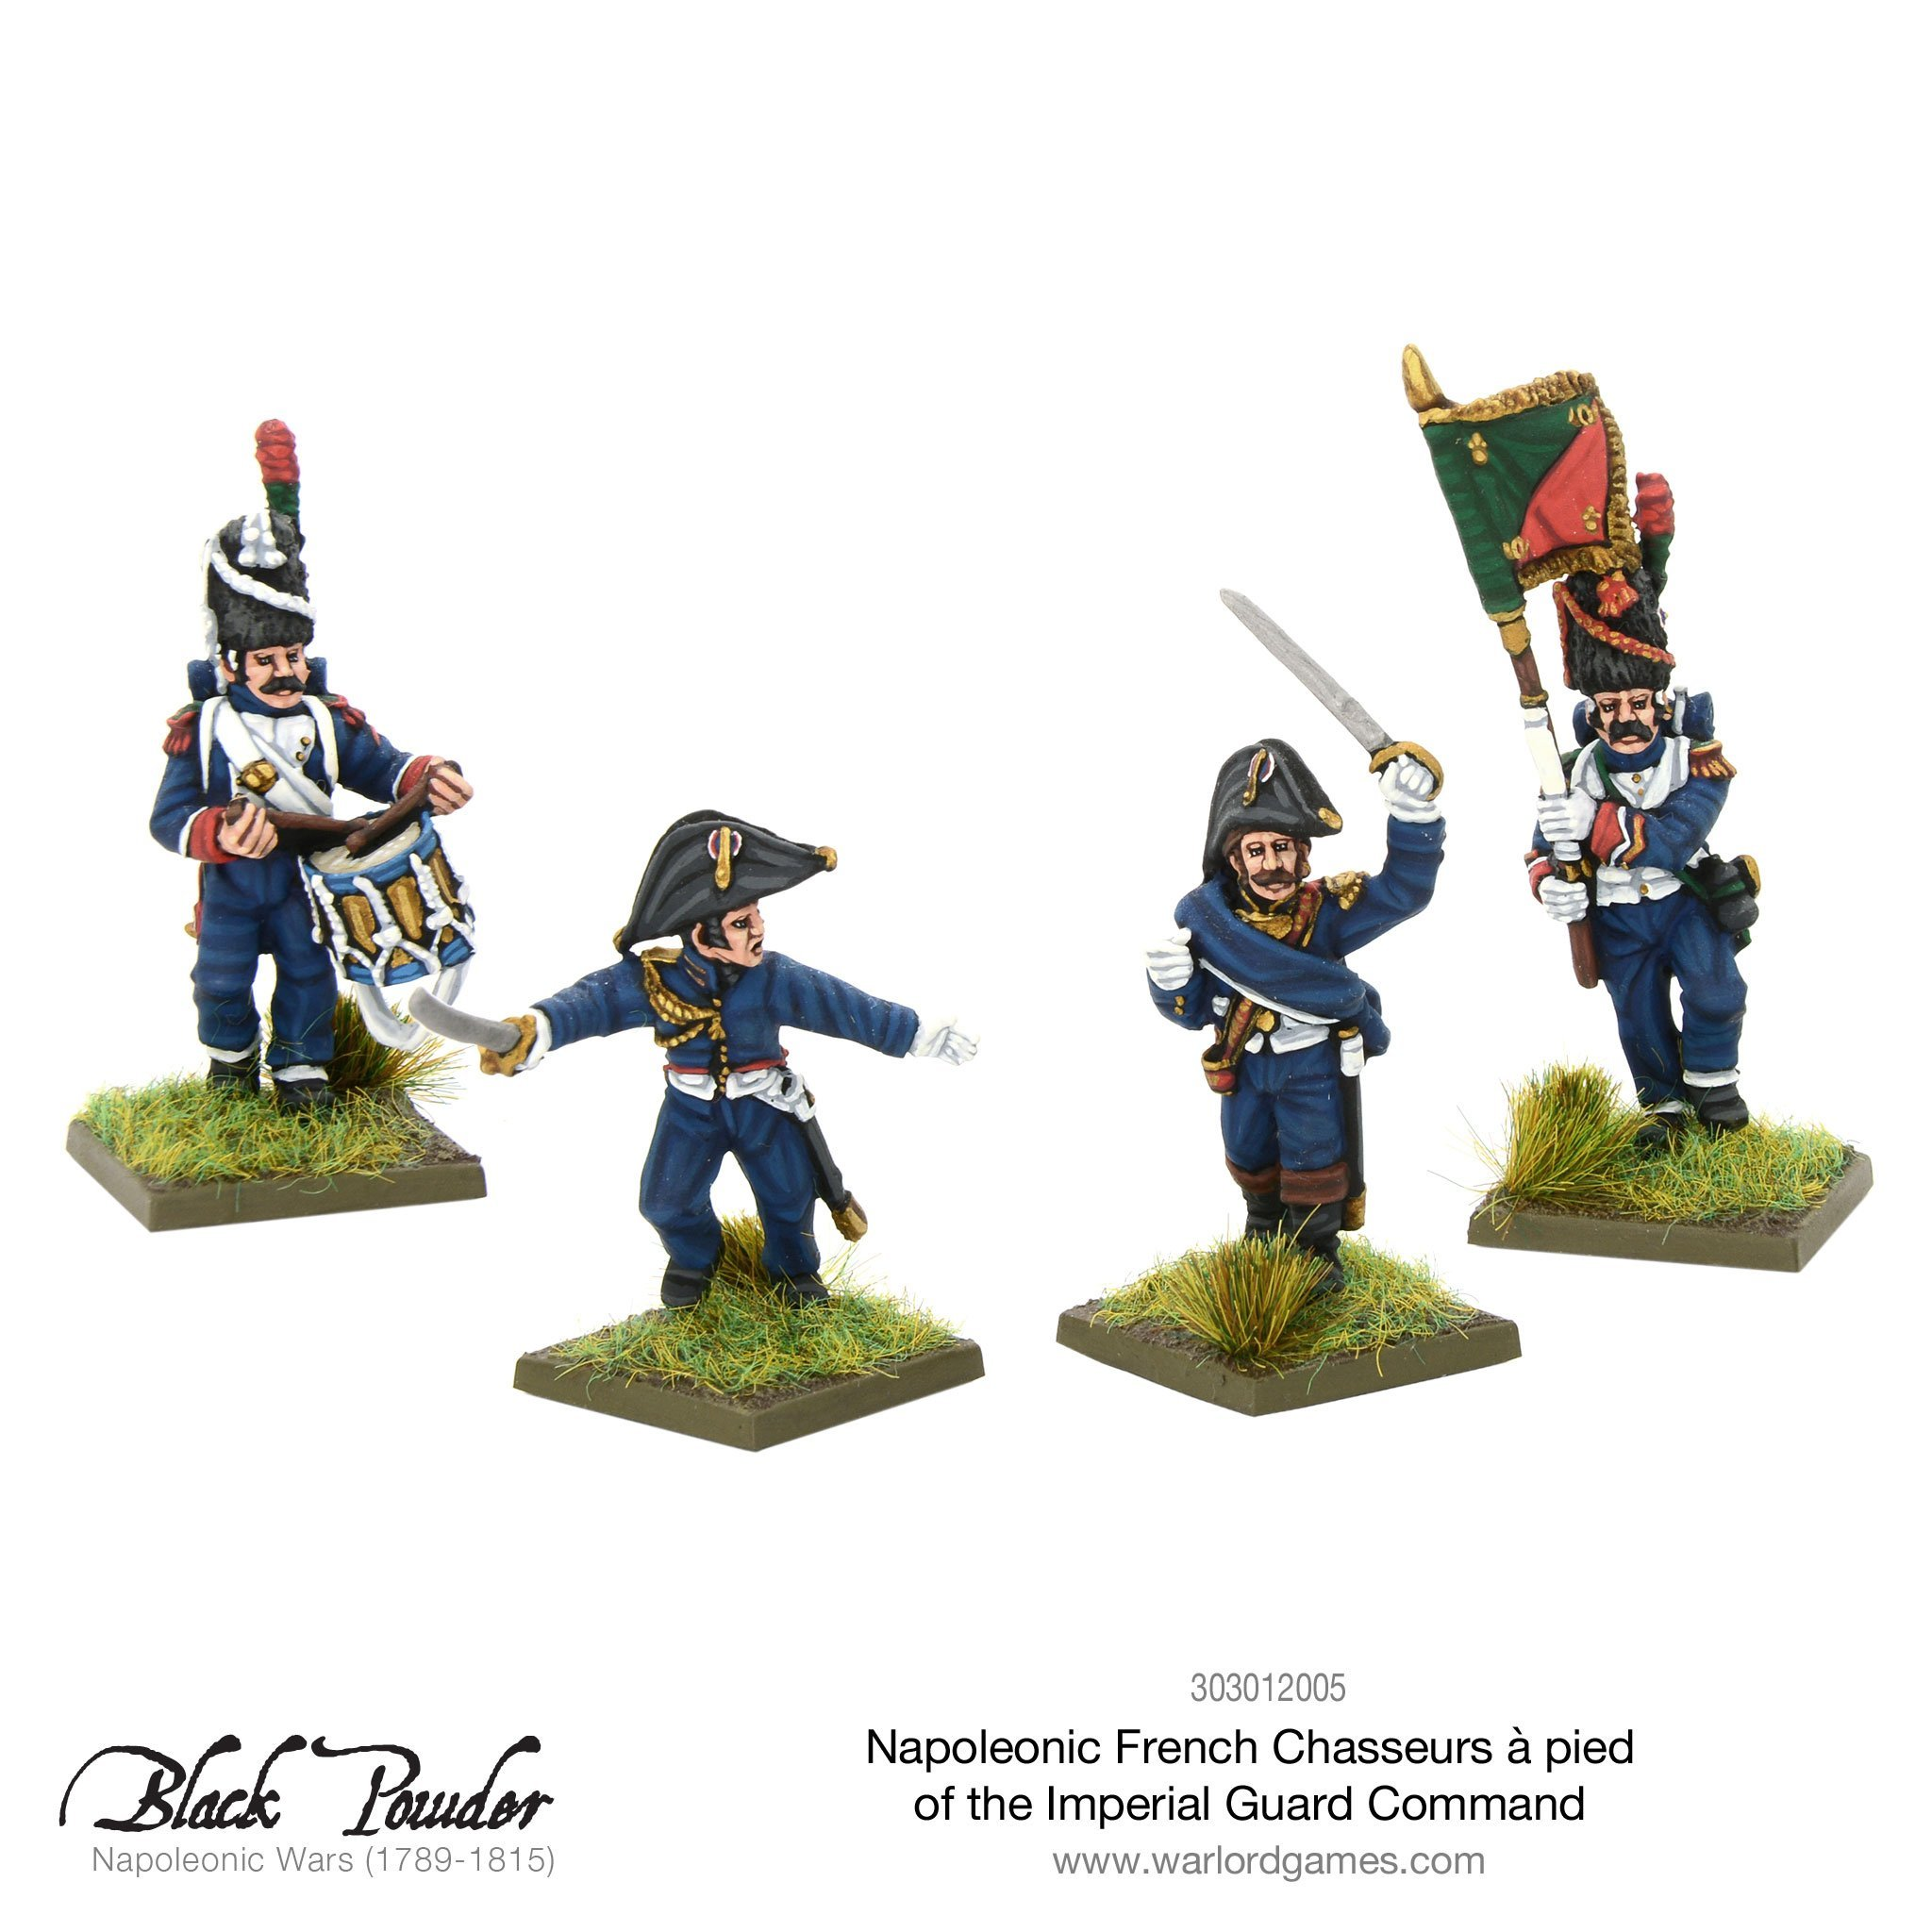 Black Powder Napoleonic Wars: Napoleonic French Chasseurs a Pied of the Imperial Guard command